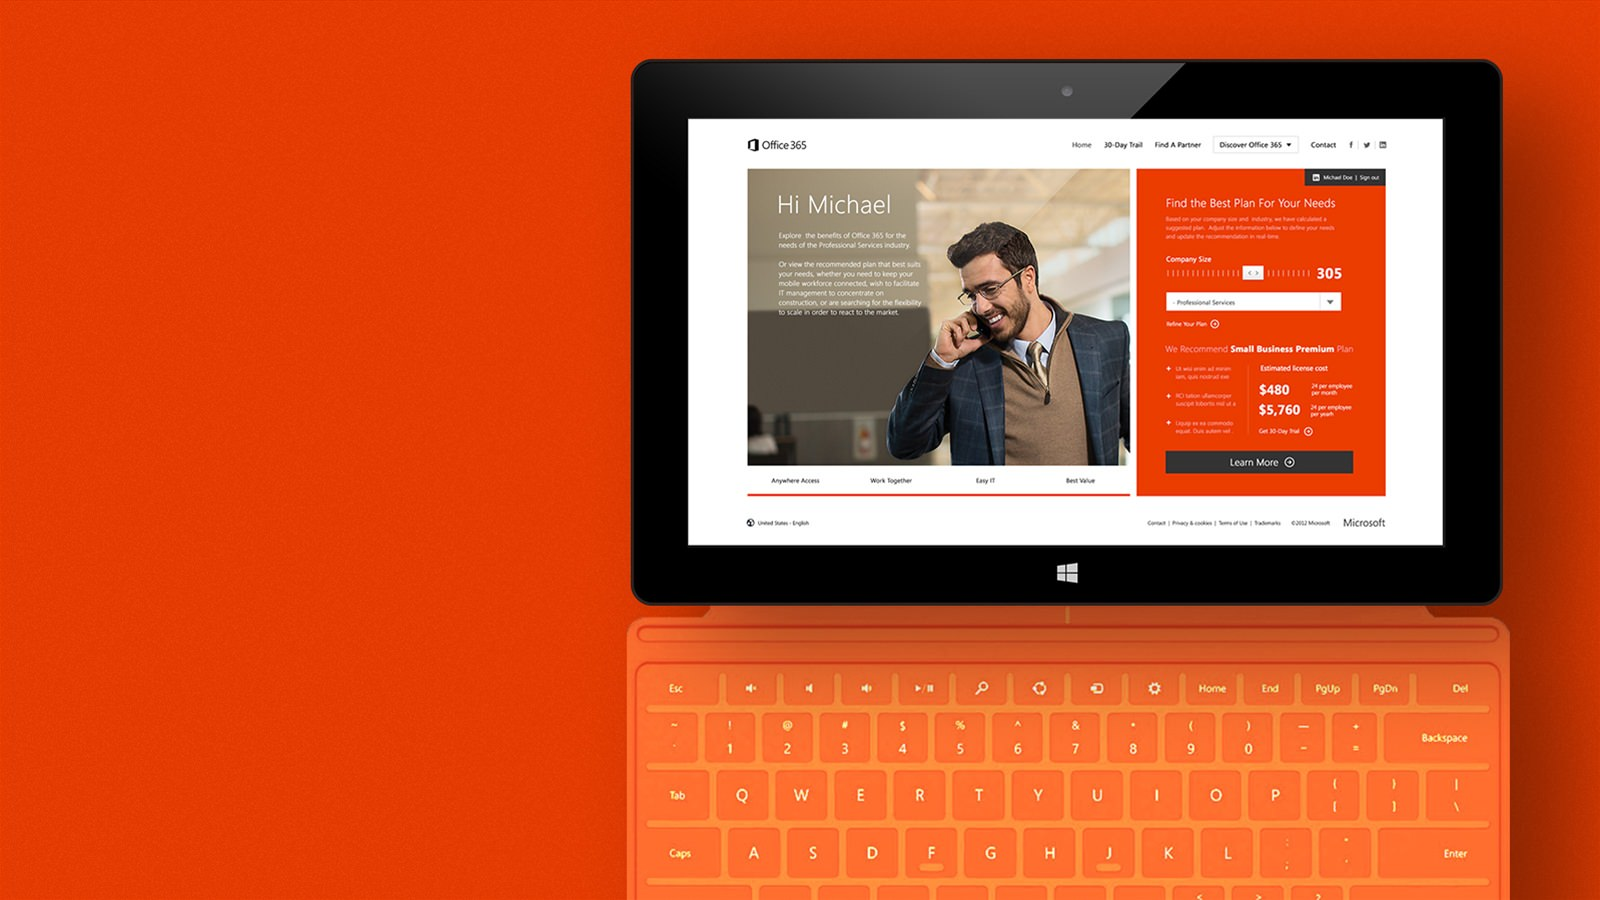 Download Microsoft Office 365 With 30 Days Trial And Free Lisensi Proffesional Plus 2016 02 For Windows Macos